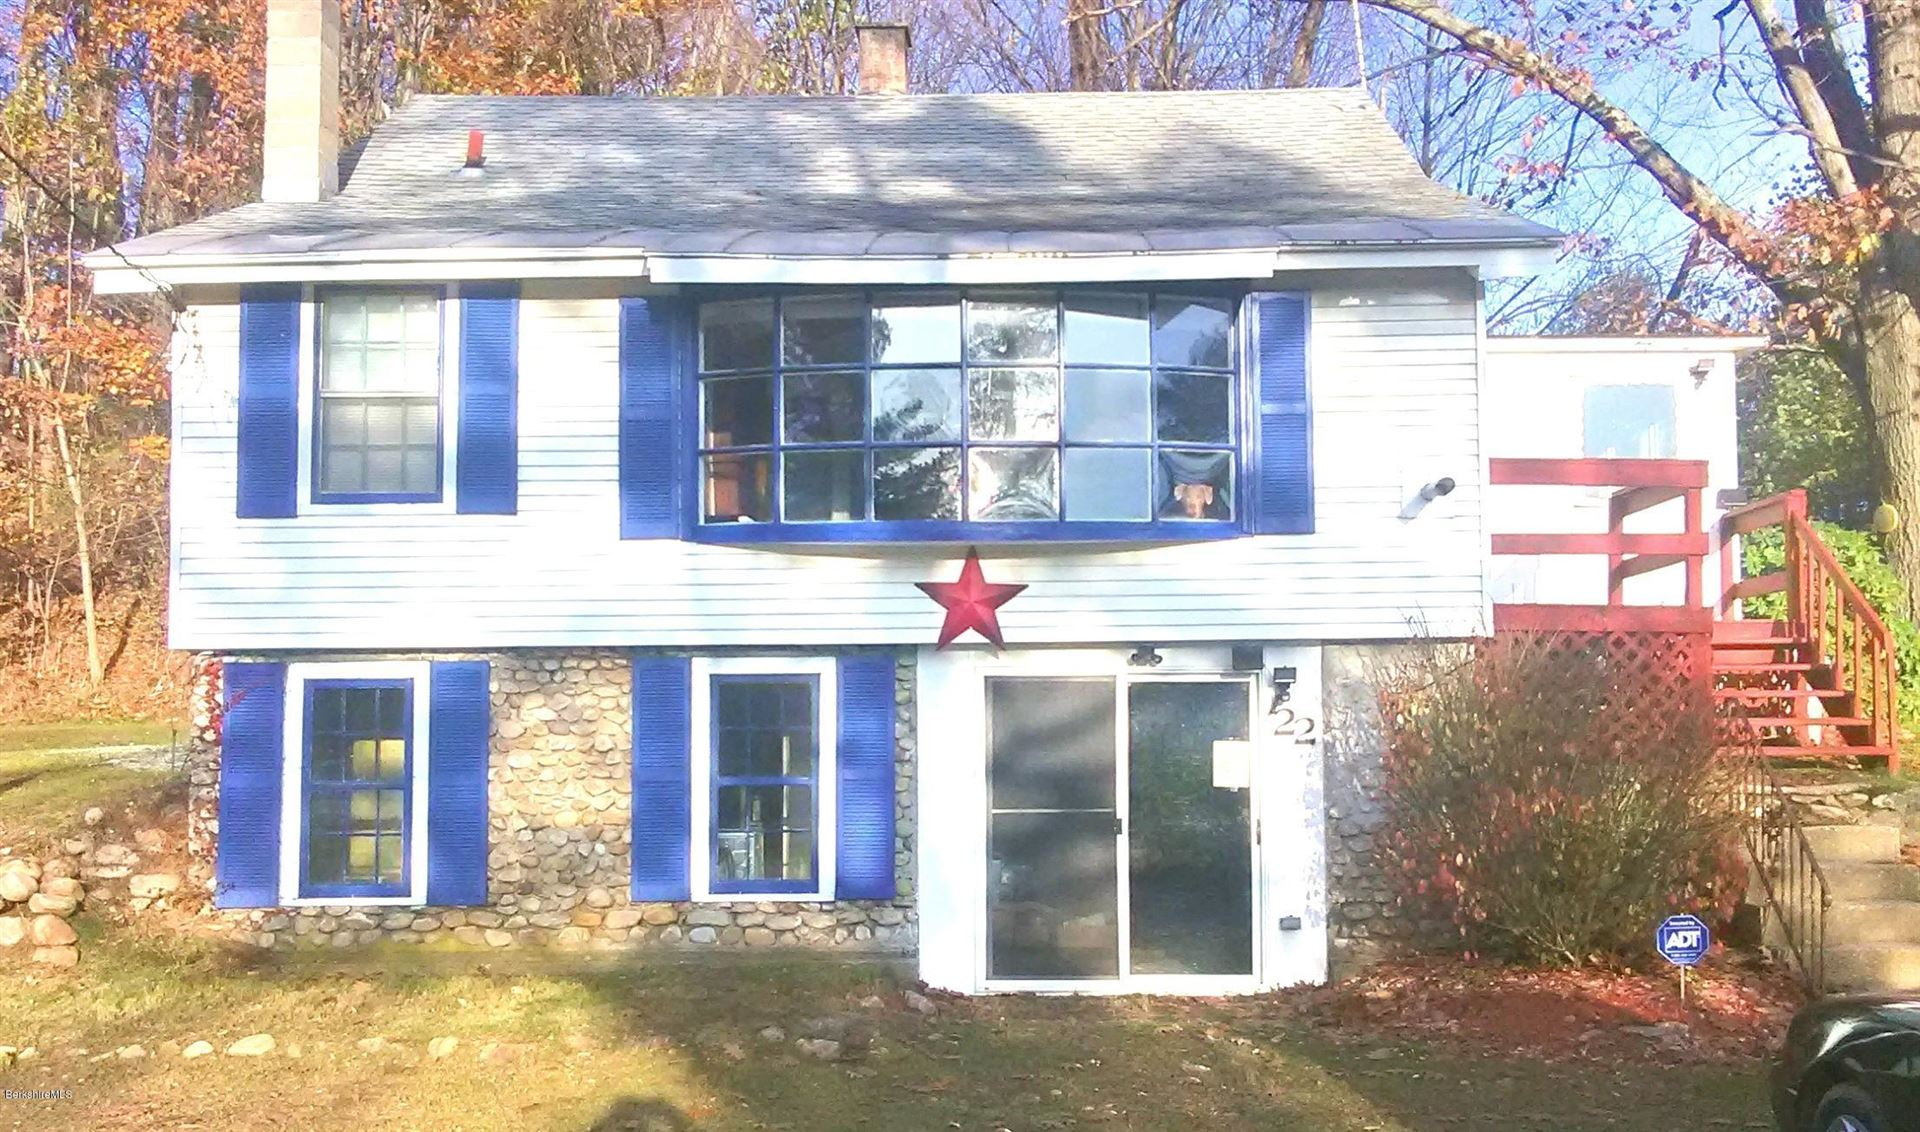 22 Meadowview Dr, Pittsfield, MA 01201 - MLS#: 230556